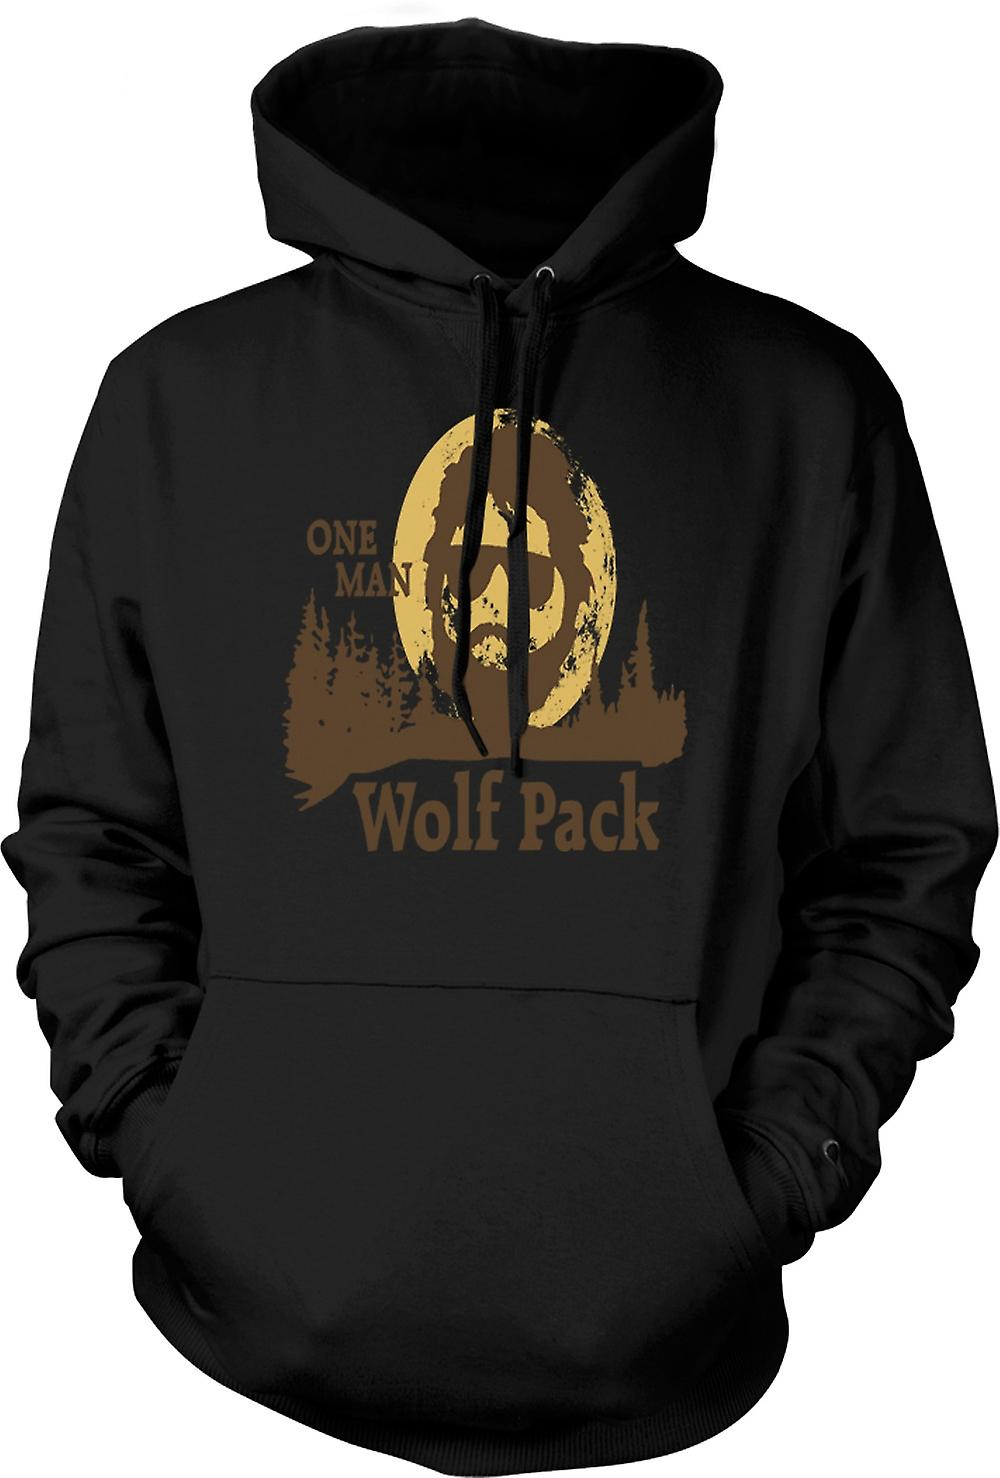 Mens Hoodie - The Hangover One Man Wolf Pack - Drôle